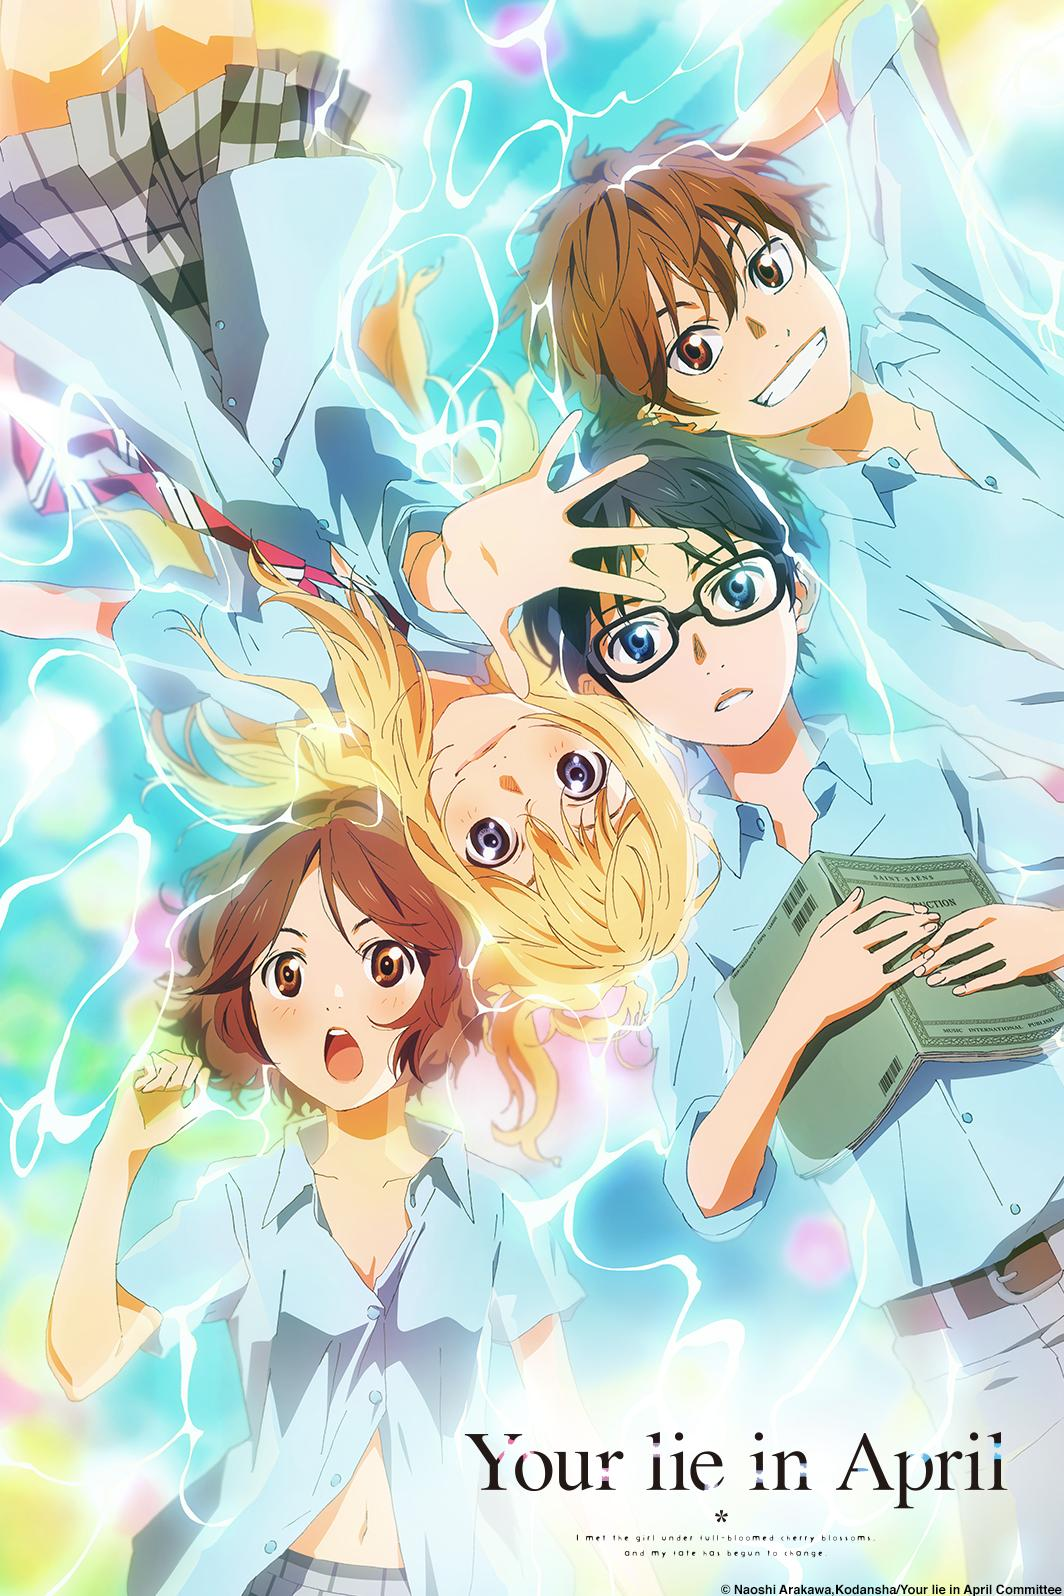 Your lie in April - Watch on Crunchyroll